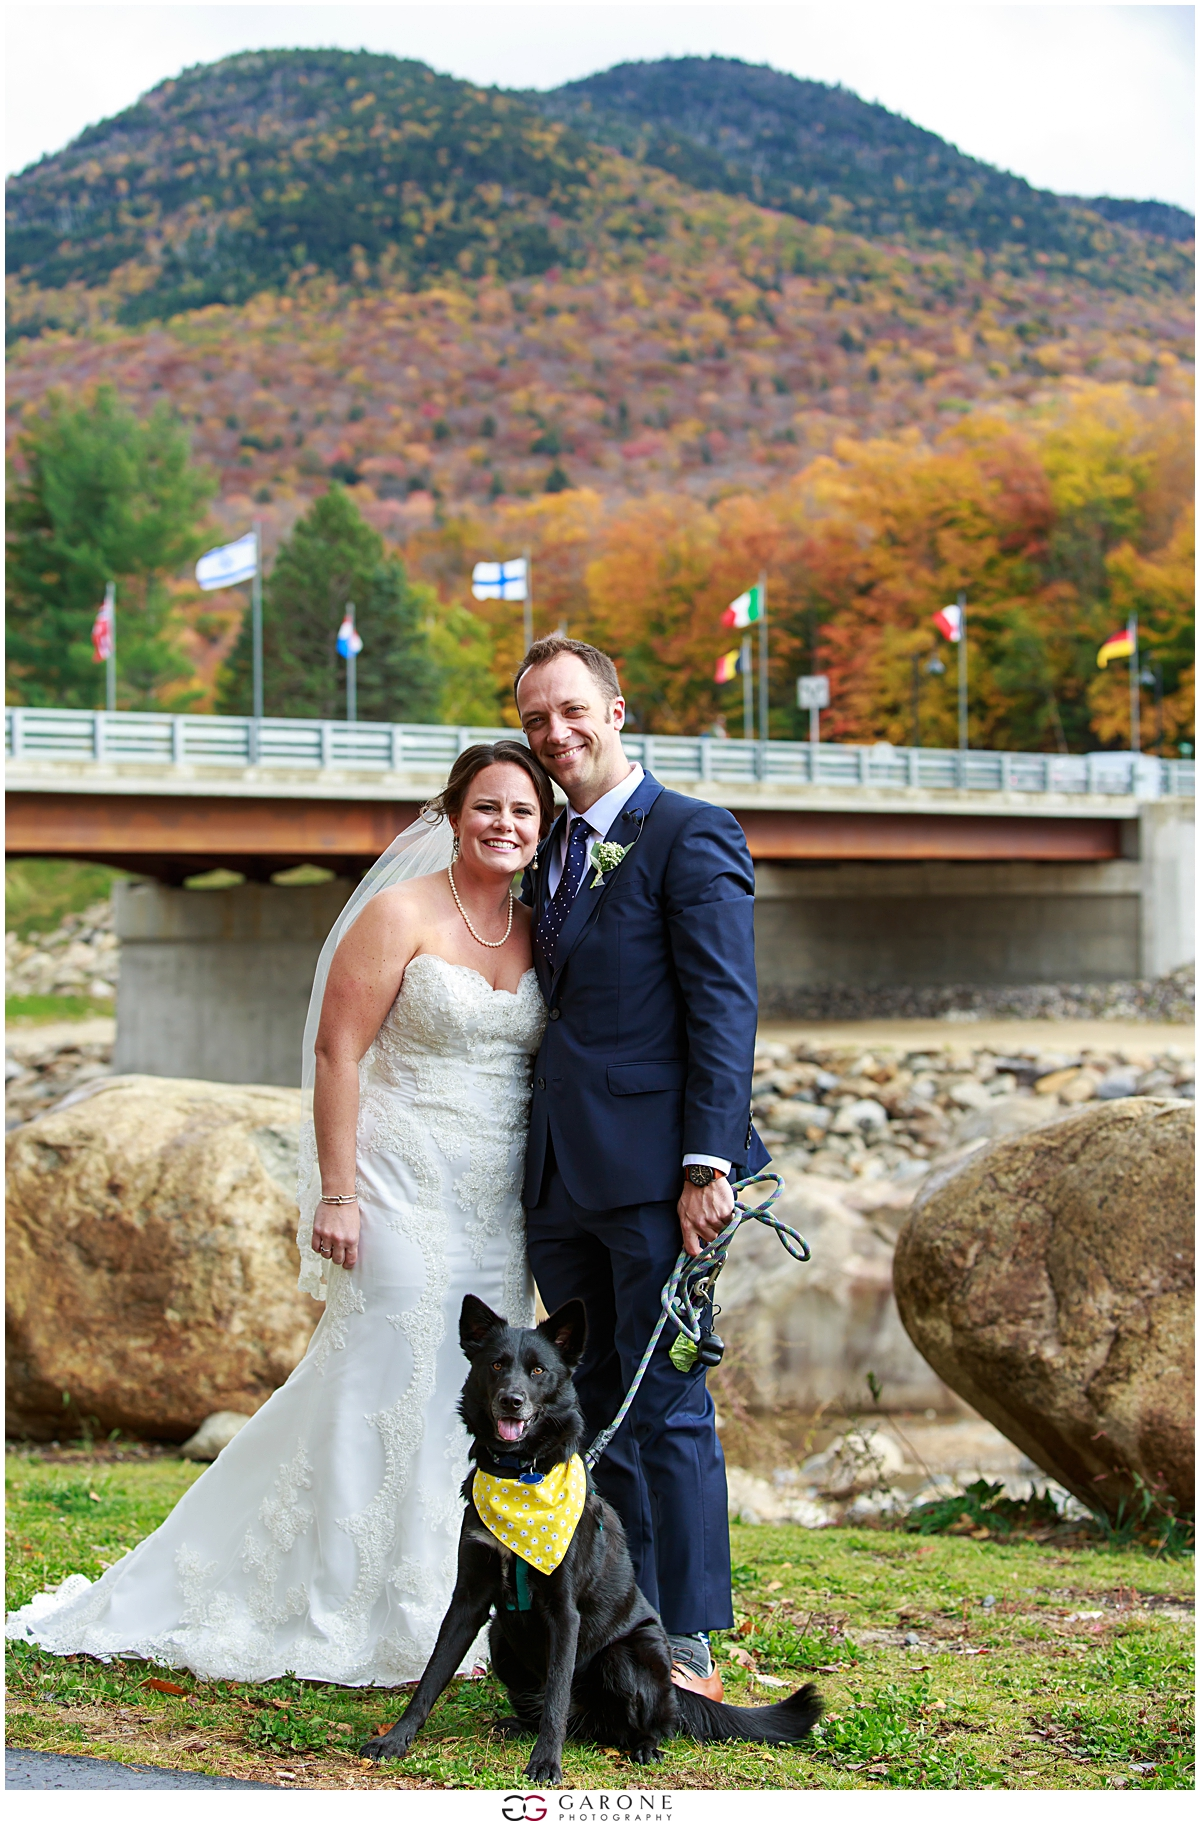 Garone_Photography_Loon_Mountain_Wedding_NH_White_Mountain_Wedding_Photography_0001.jpg